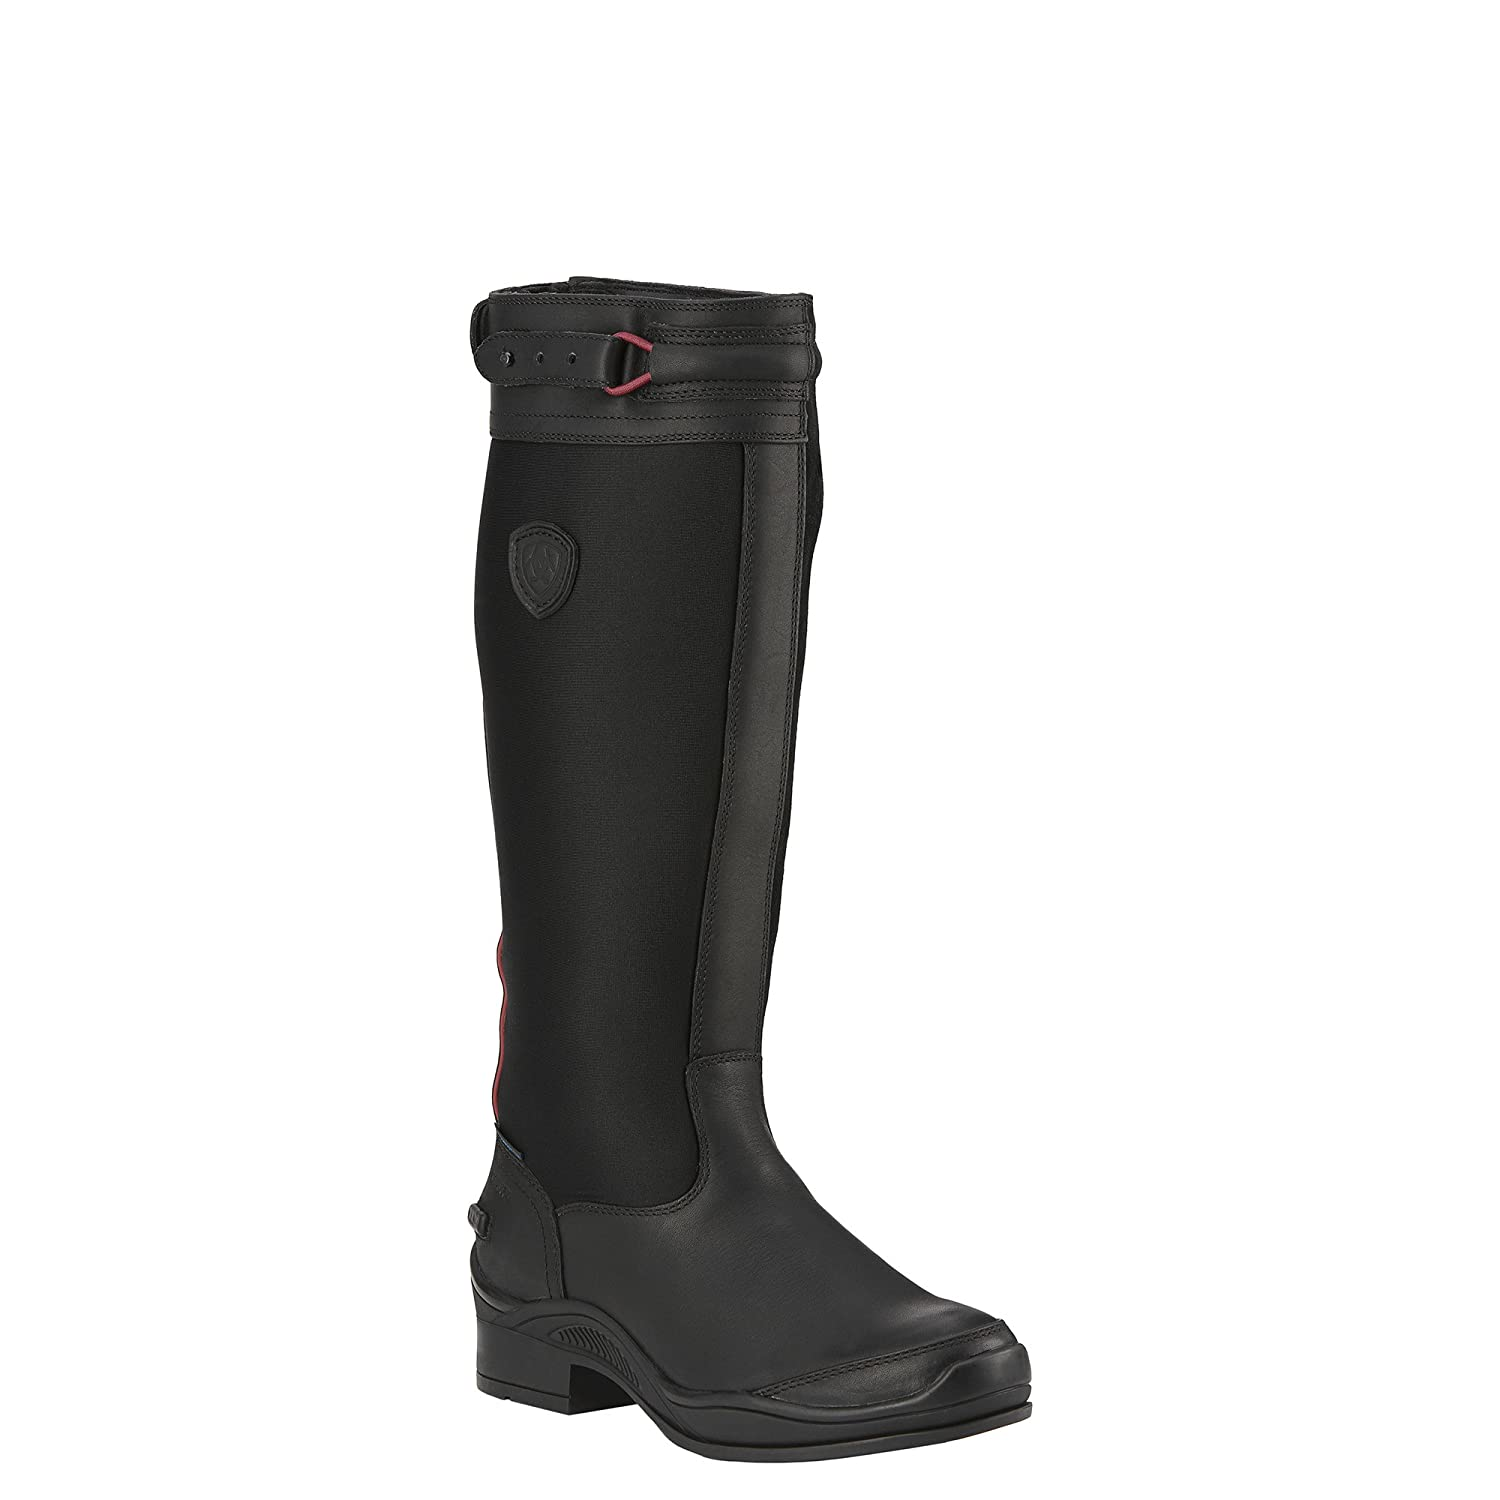 Amazon.com: Ariat Womens Extreme Tall H2O Insulated Winter Riding ...